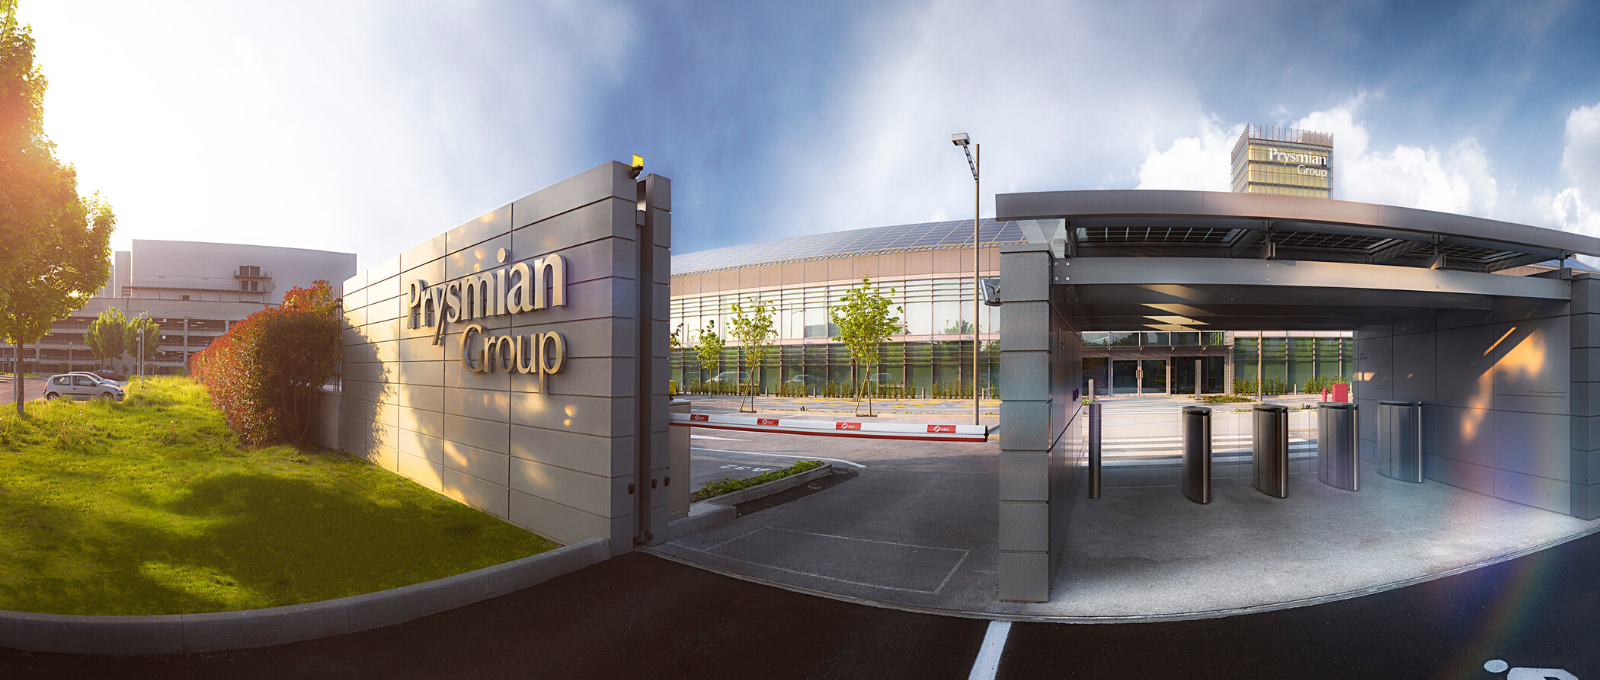 Prysmian Group's update on Covid-19